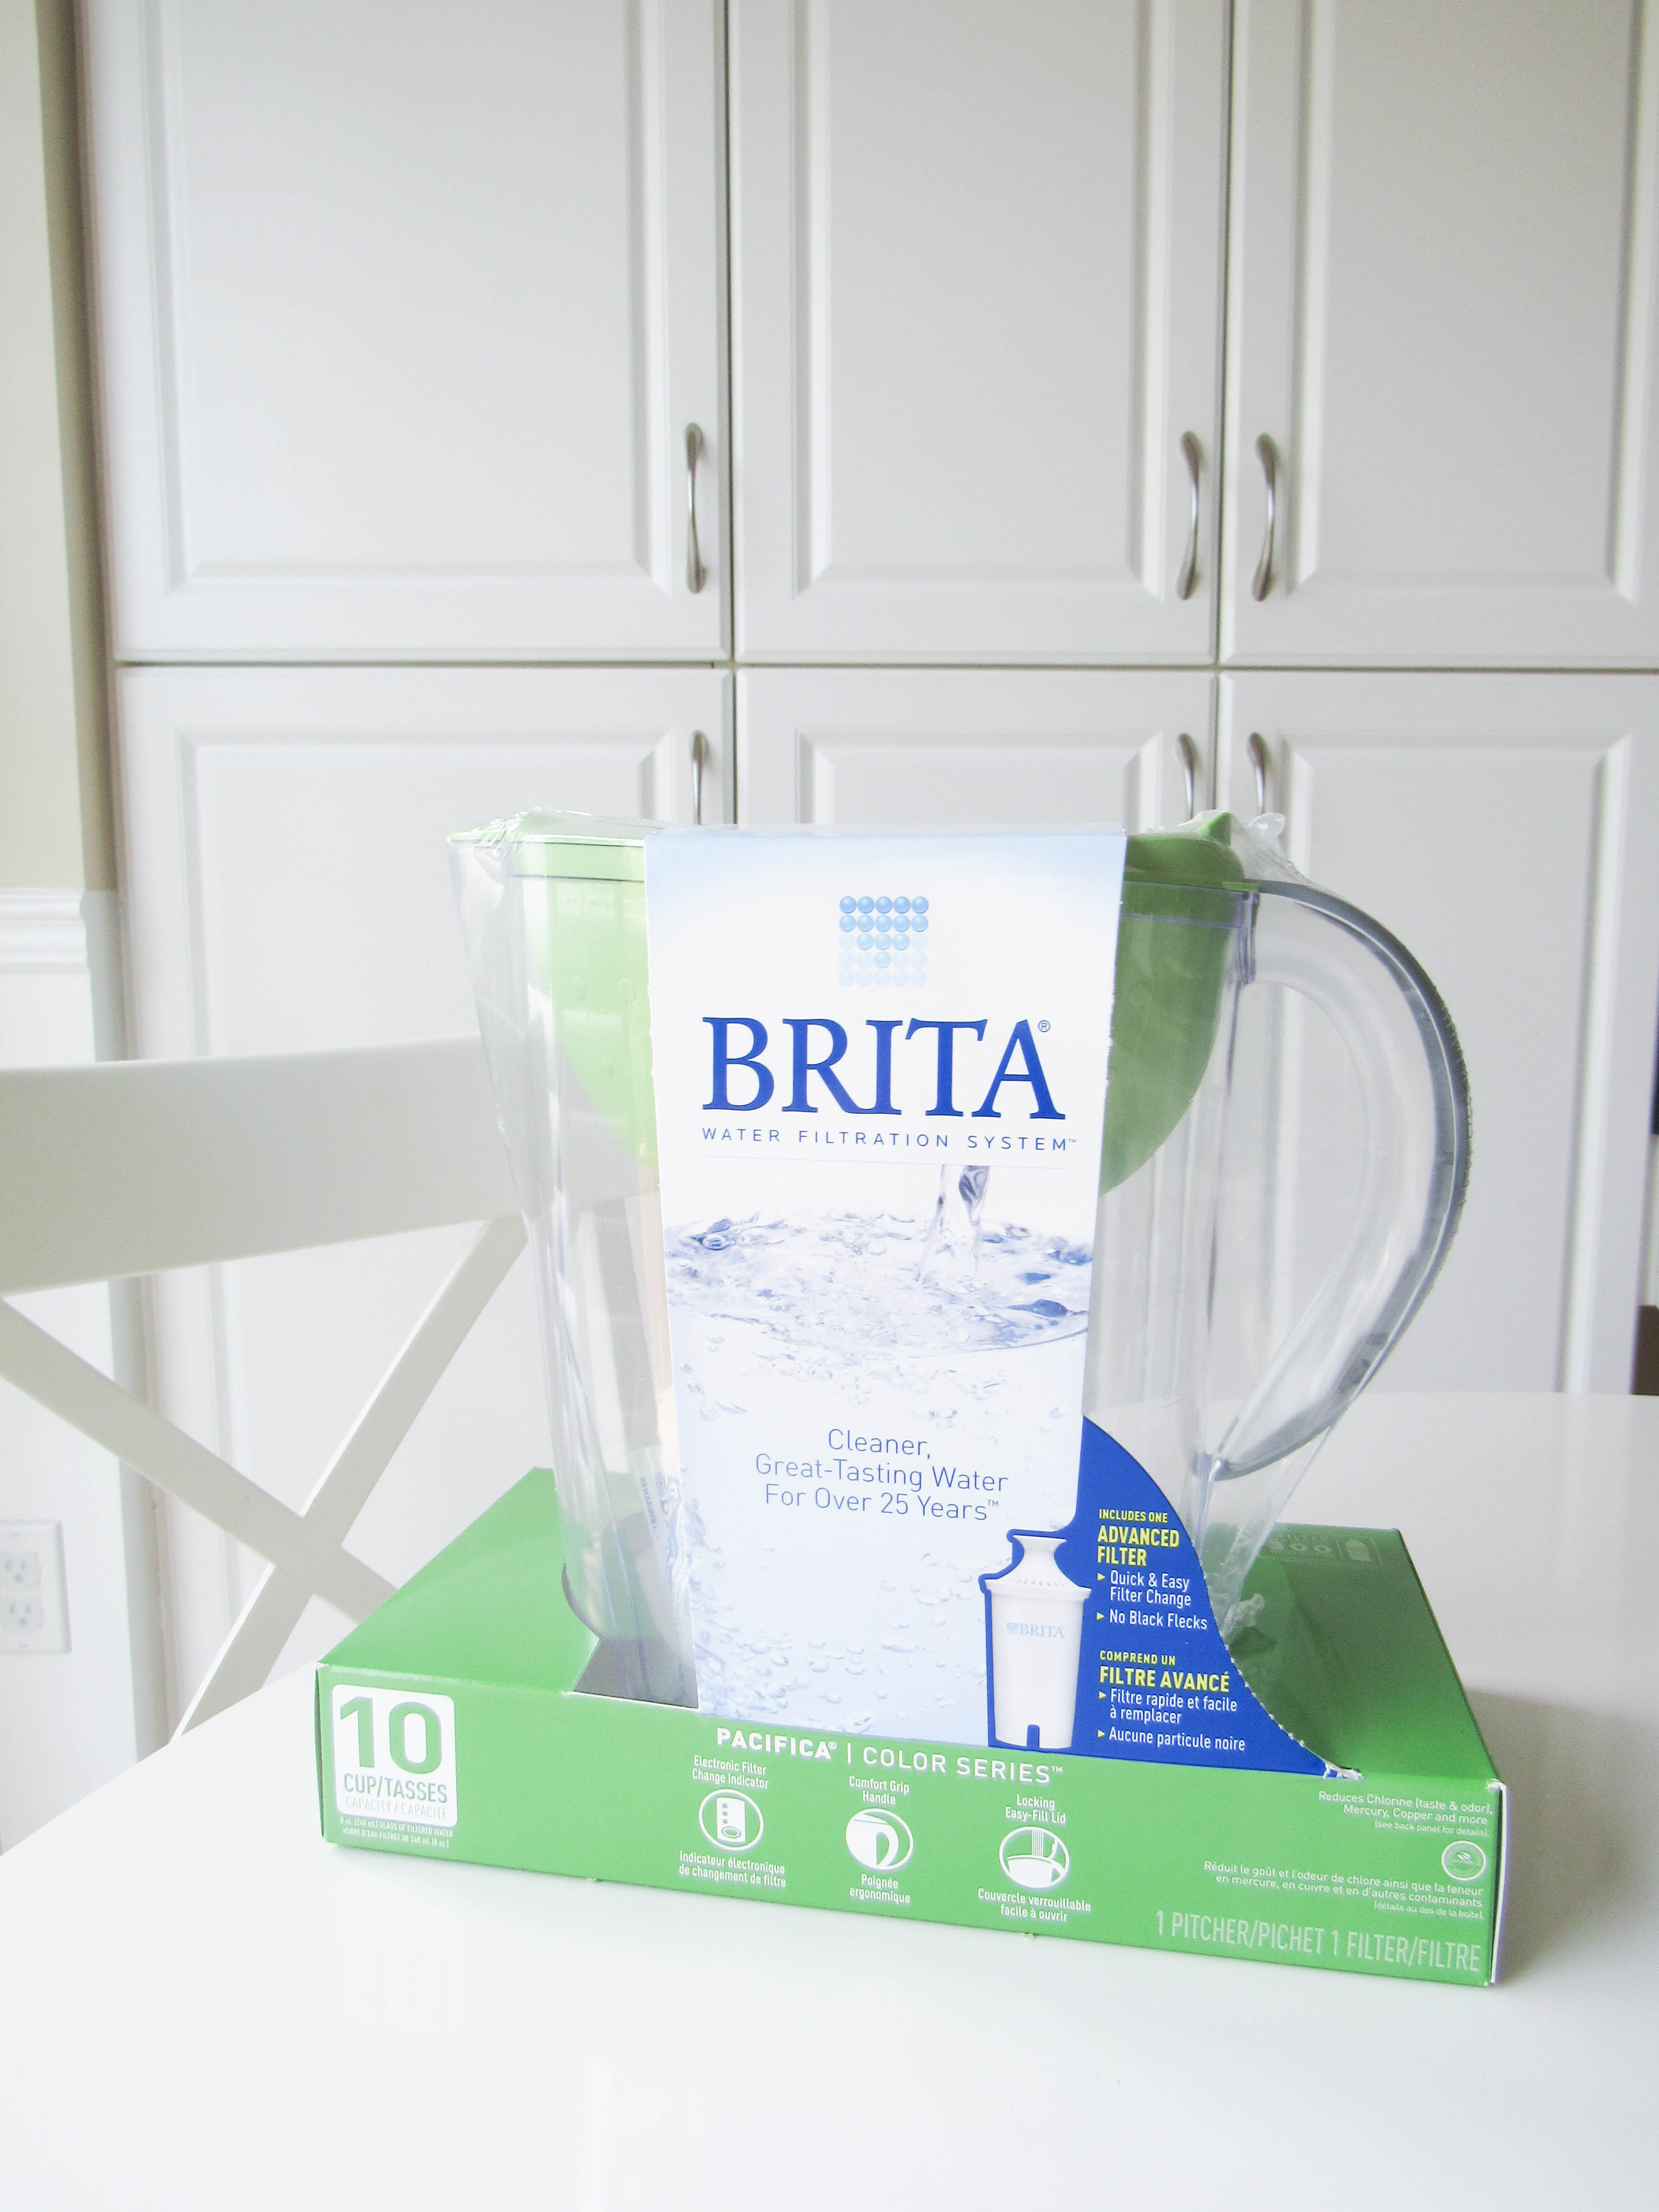 Brita water- livin' life with style